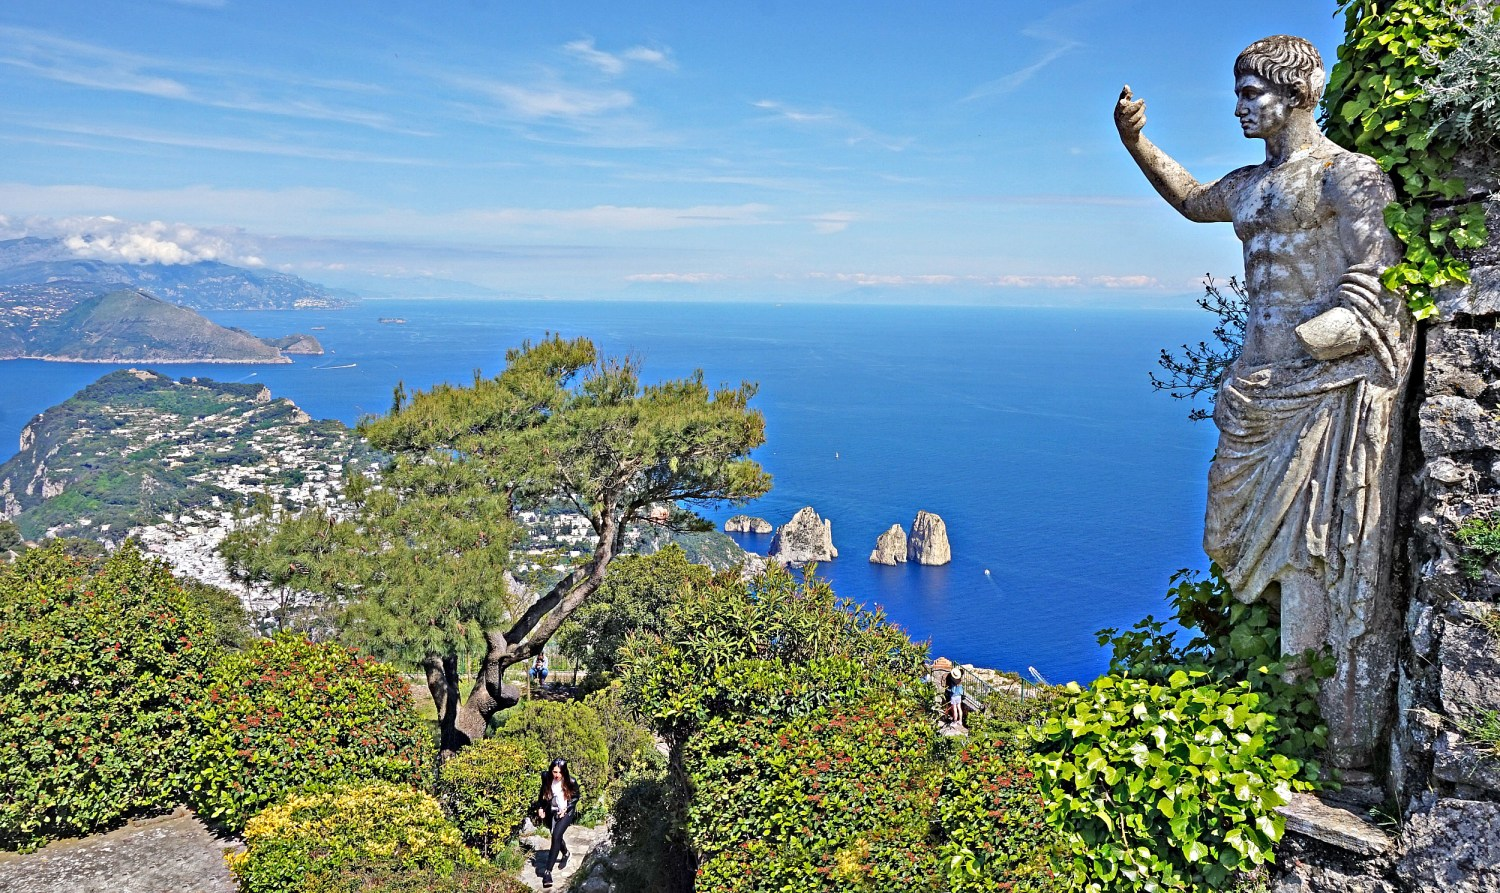 View from the top of Mount Solaro in Capri.